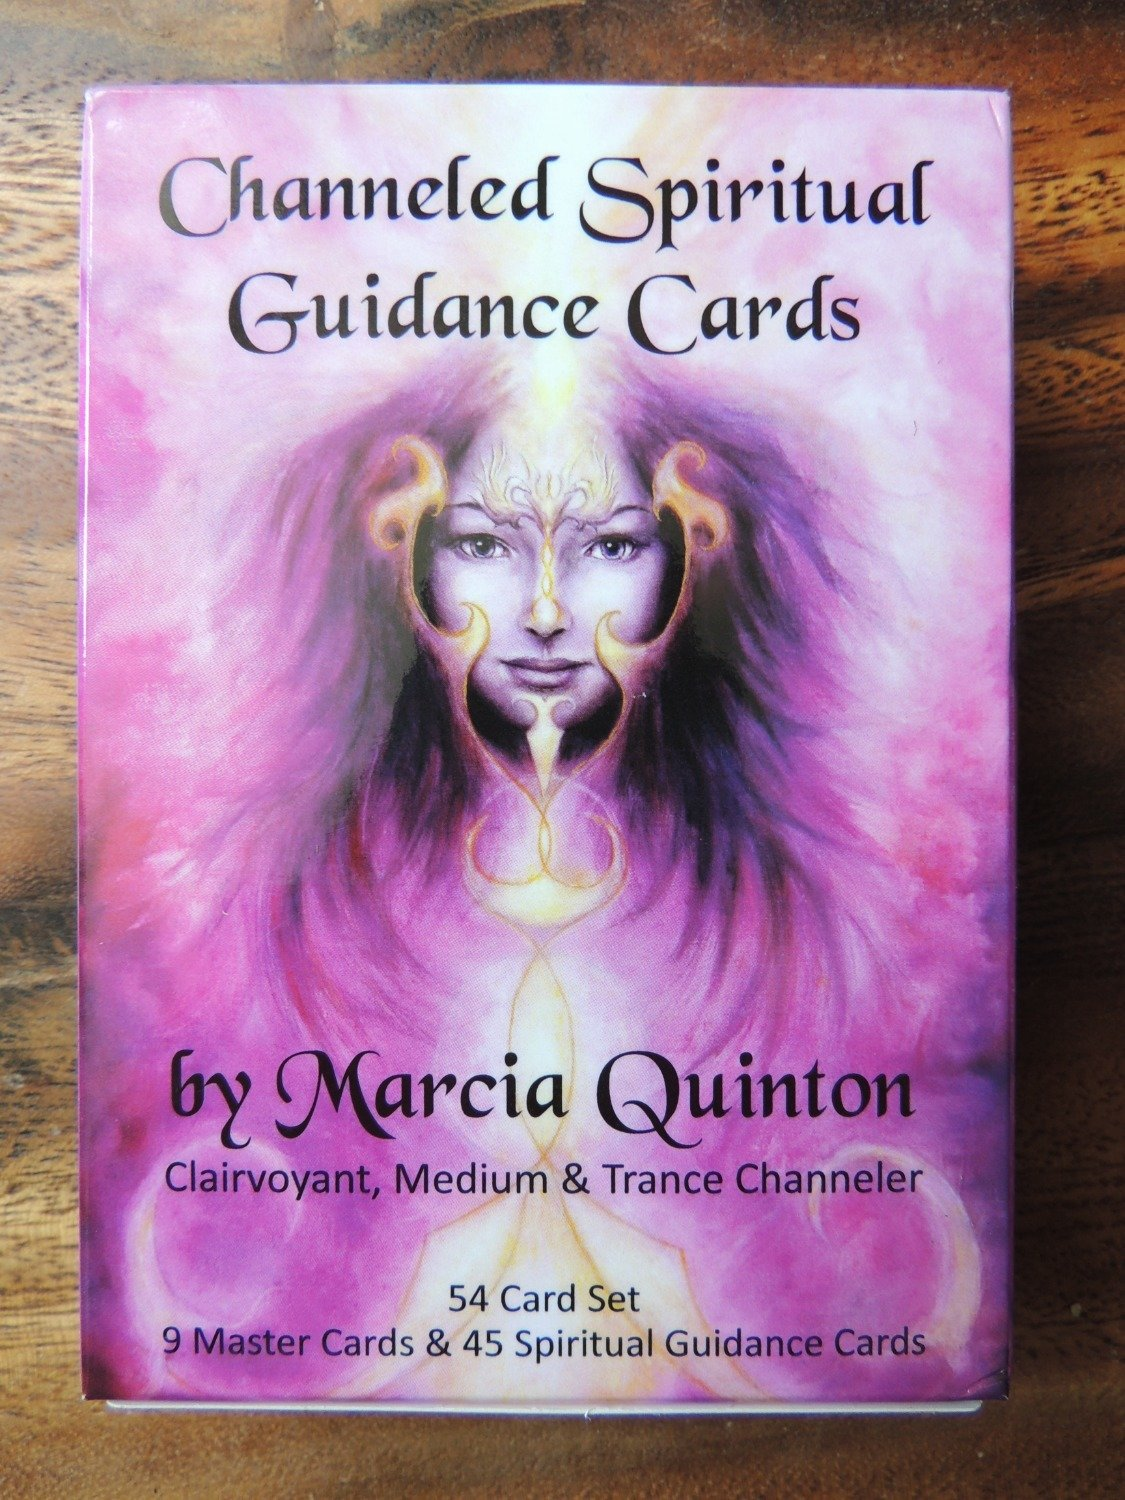 Channeled Spiritual Guidance Cards